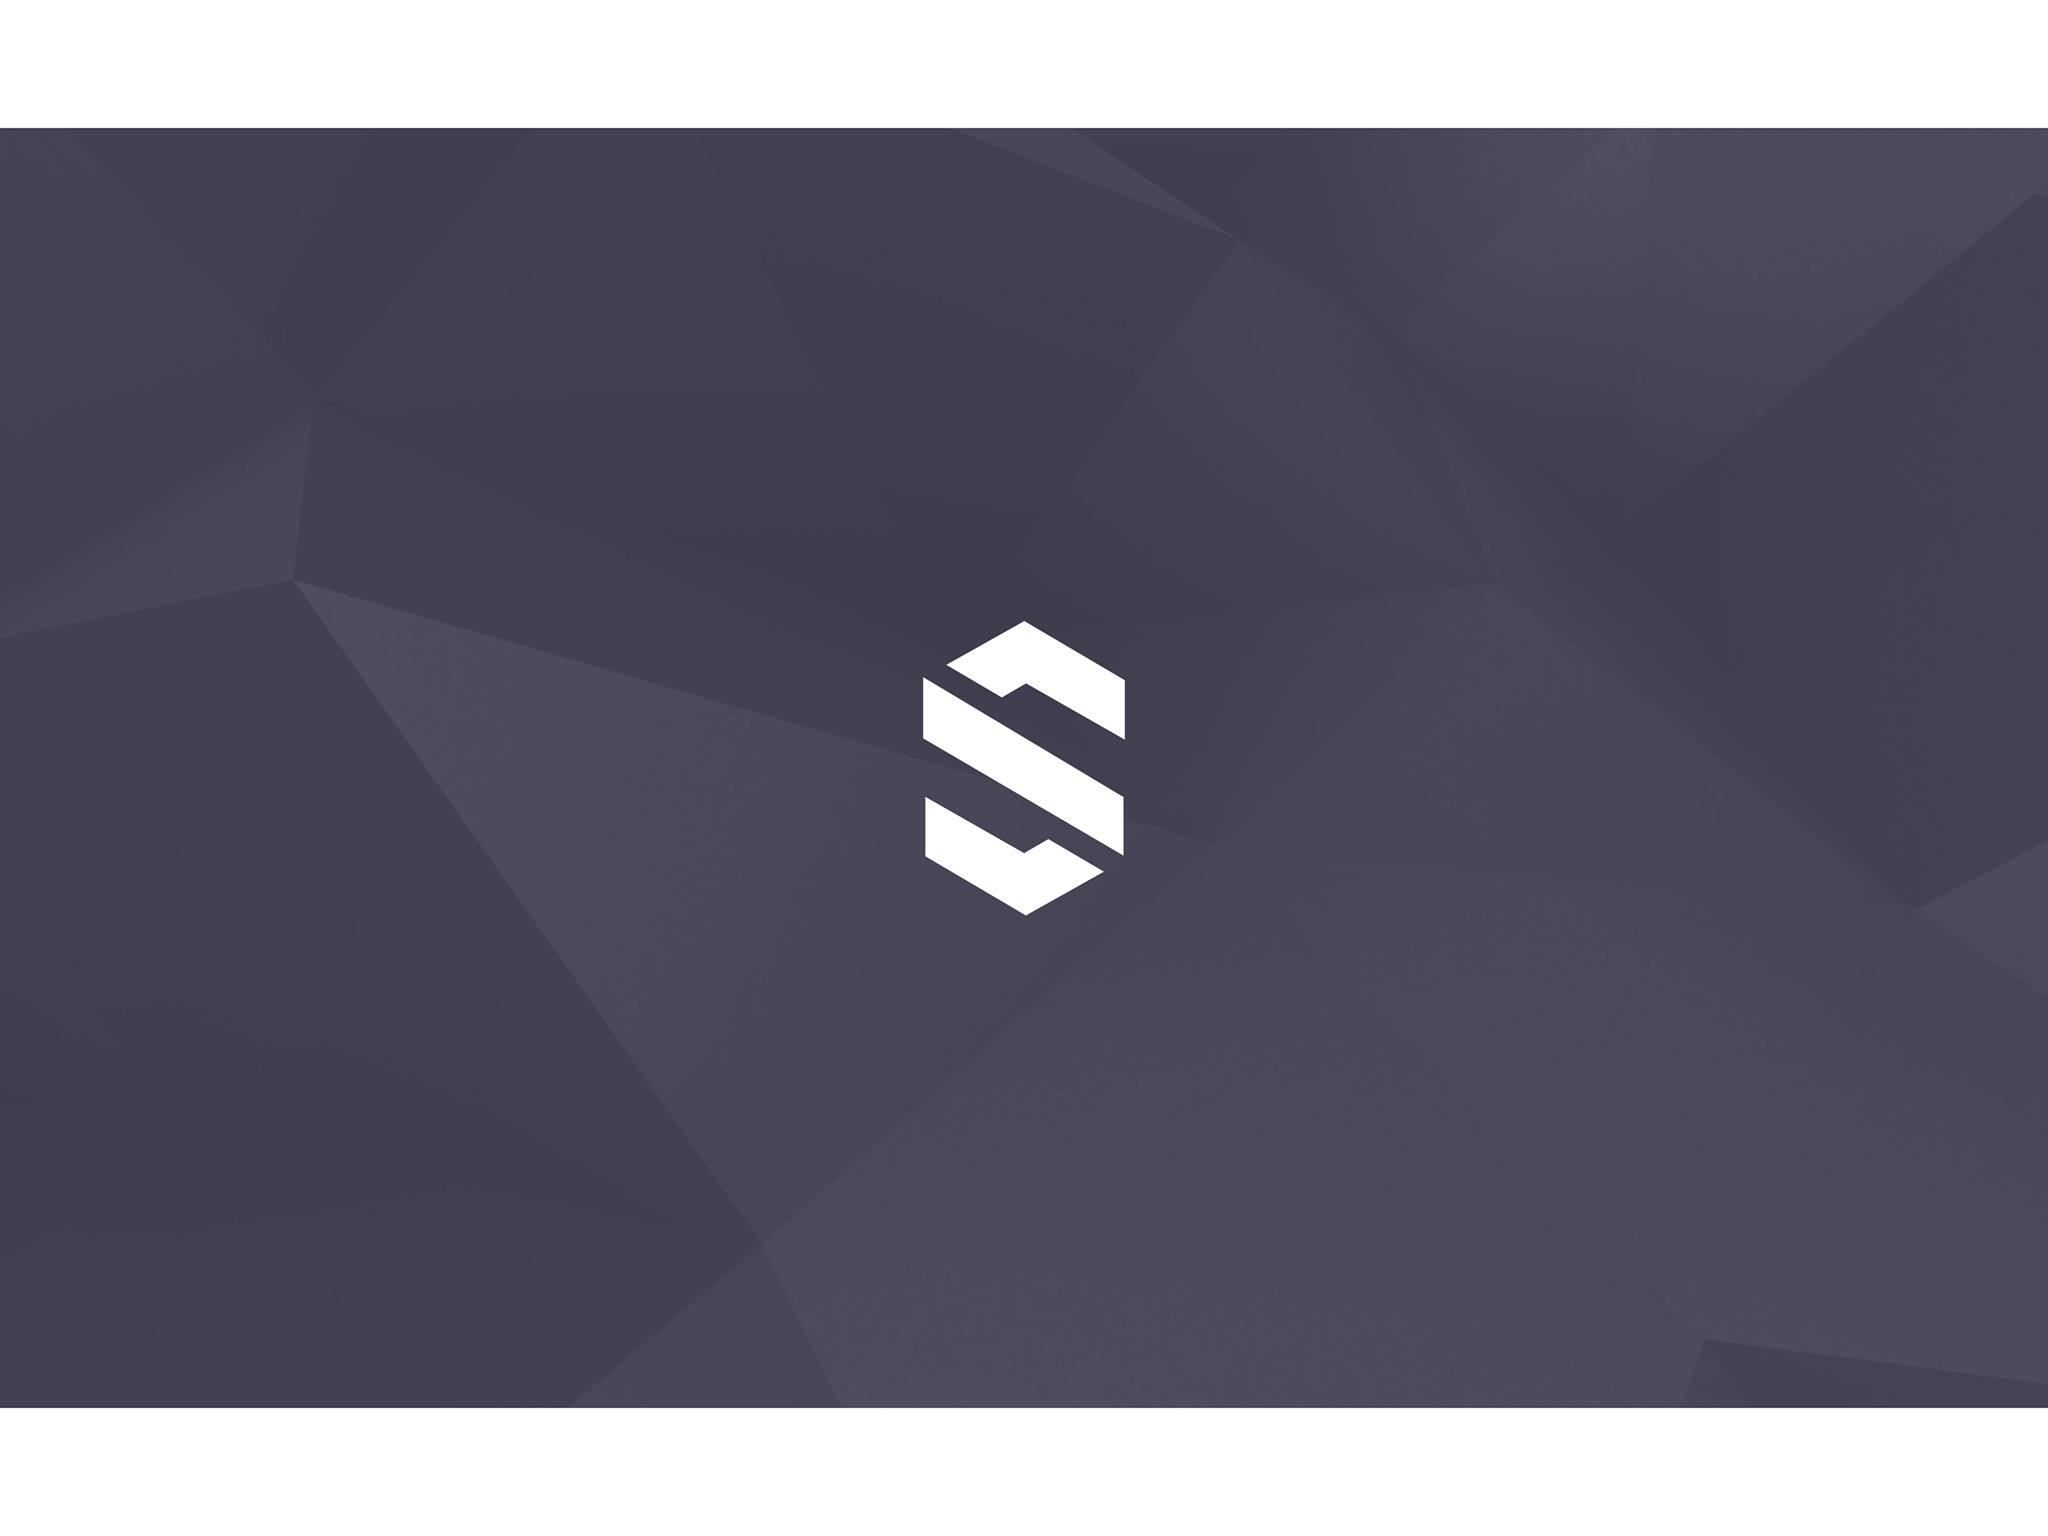 Sonoiz | Sample Packs, Music Loops & Sound Kits for Producers